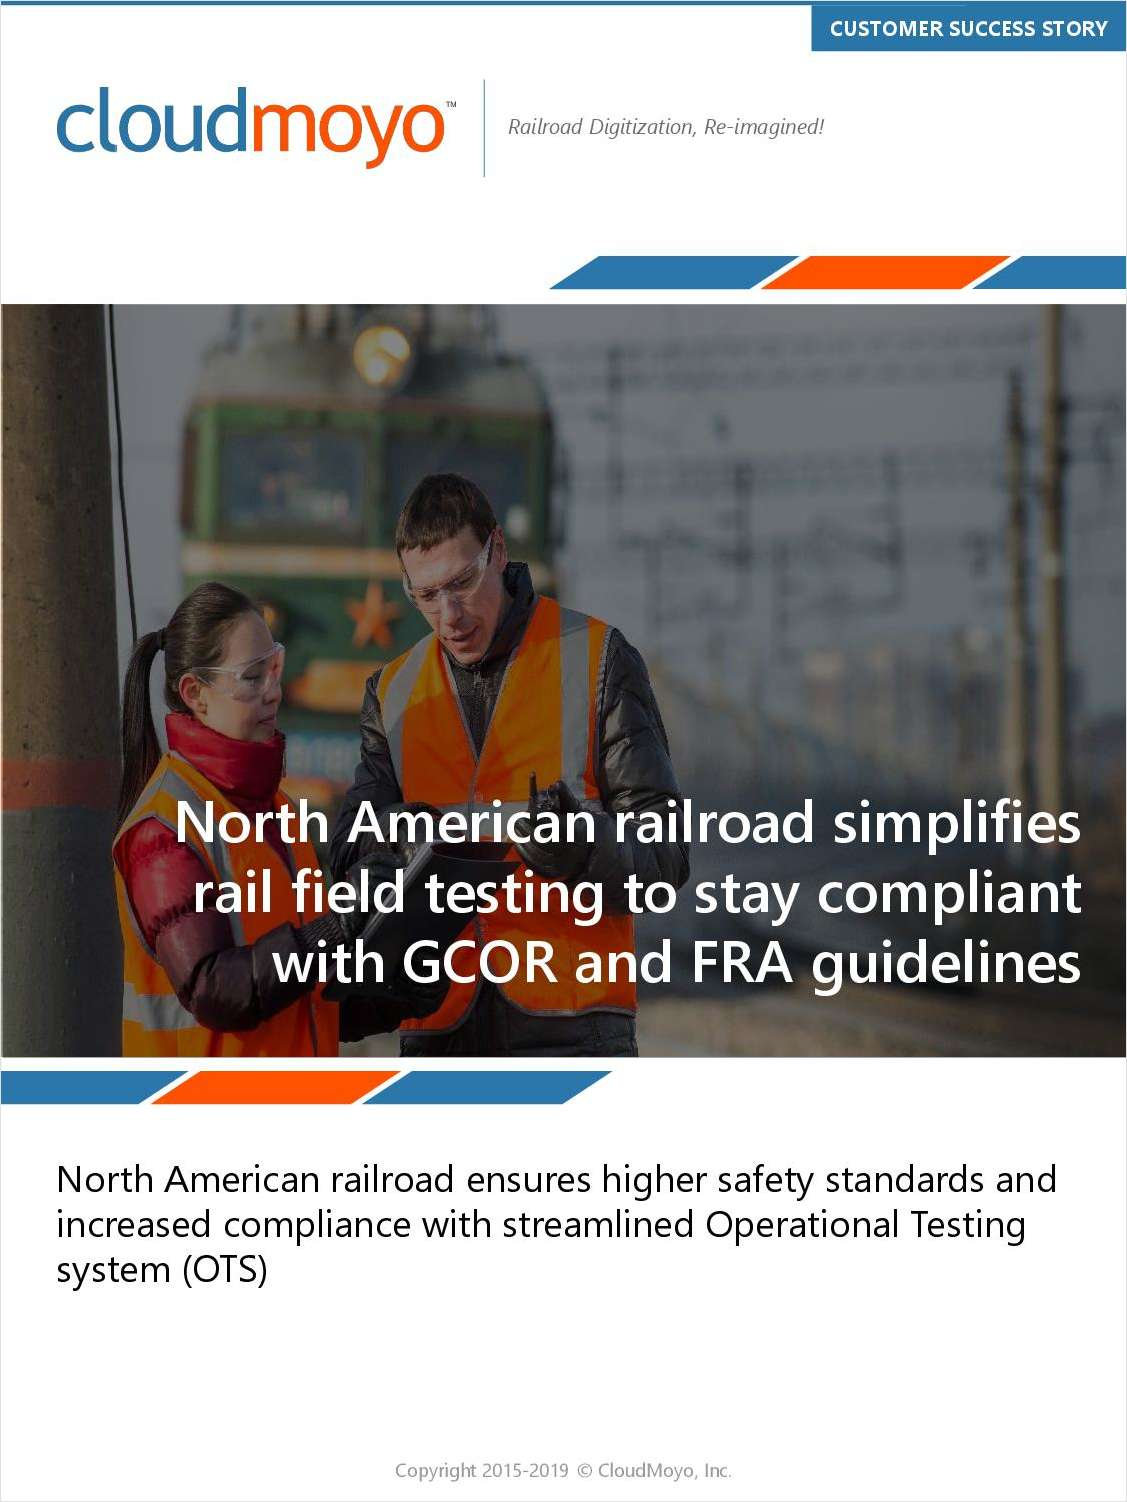 North American Railroad Simplifies Rail Field Testing to Stay Compliant with GCOR and FRA Guidelines